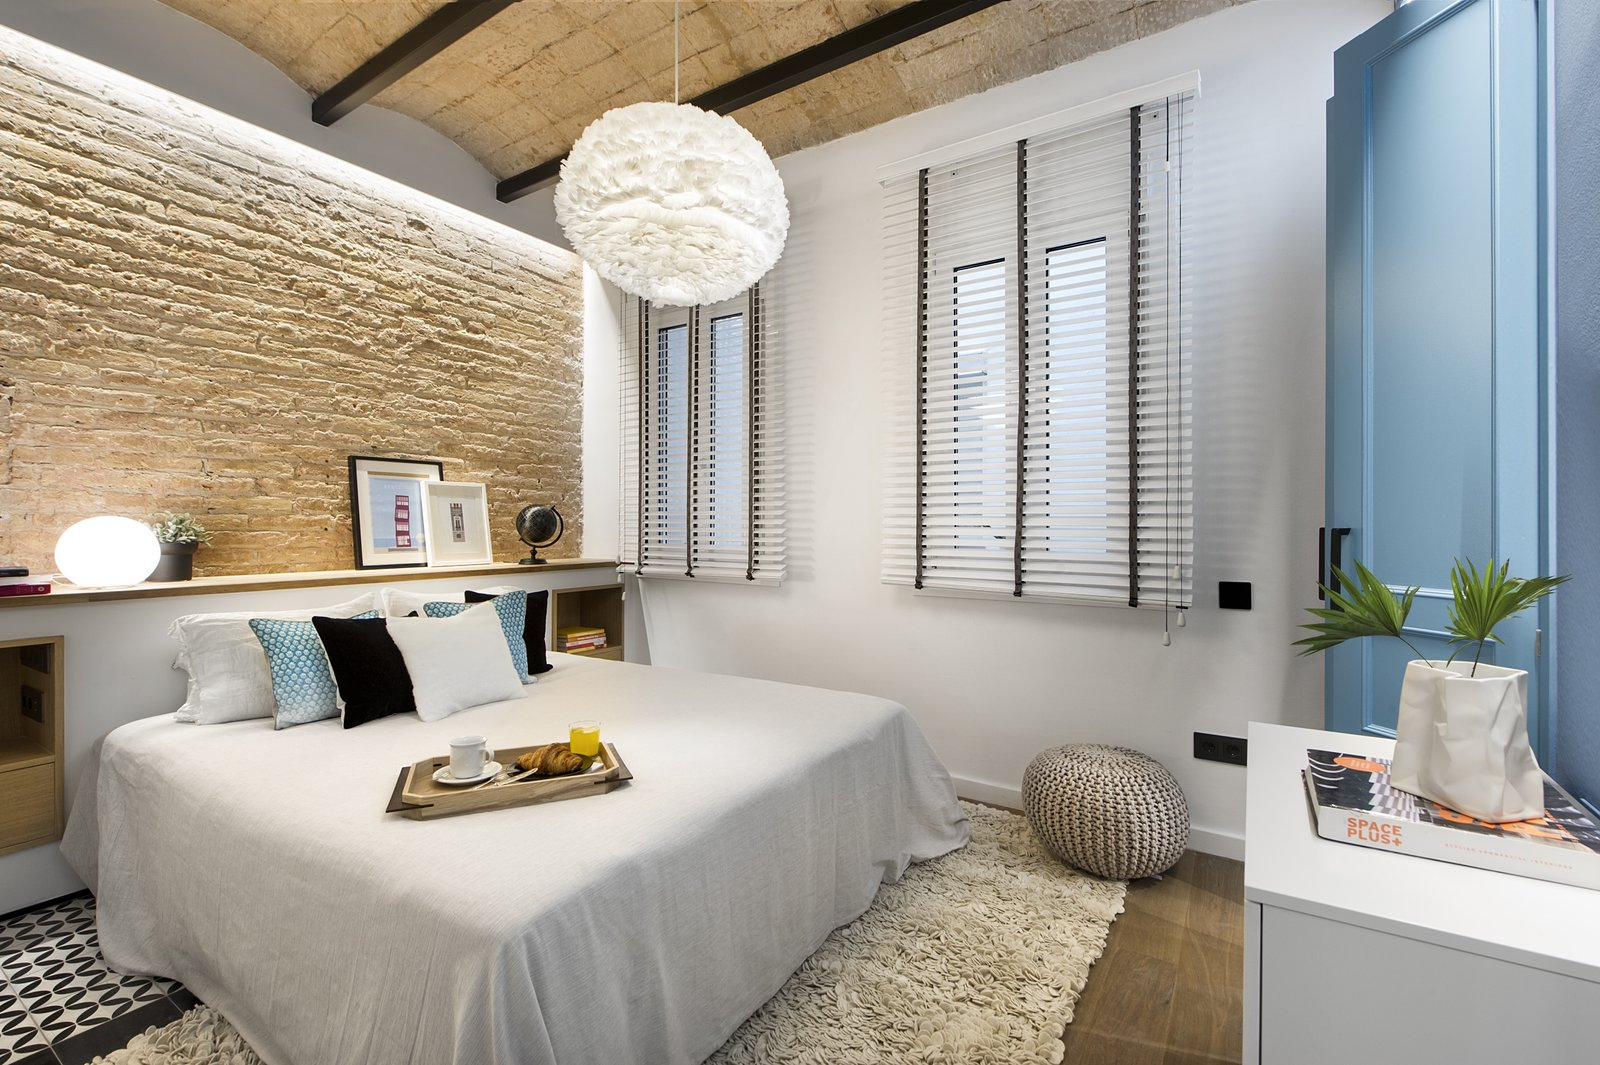 Tagged: Bedroom, Bed, Dresser, Storage, Pendant Lighting, Medium Hardwood Floor, and Ceramic Tile Floor.  Photo 5 of 11 in A Smart Layout Maximizes Space in This Compact Urban Beach Apartment in Barcelona